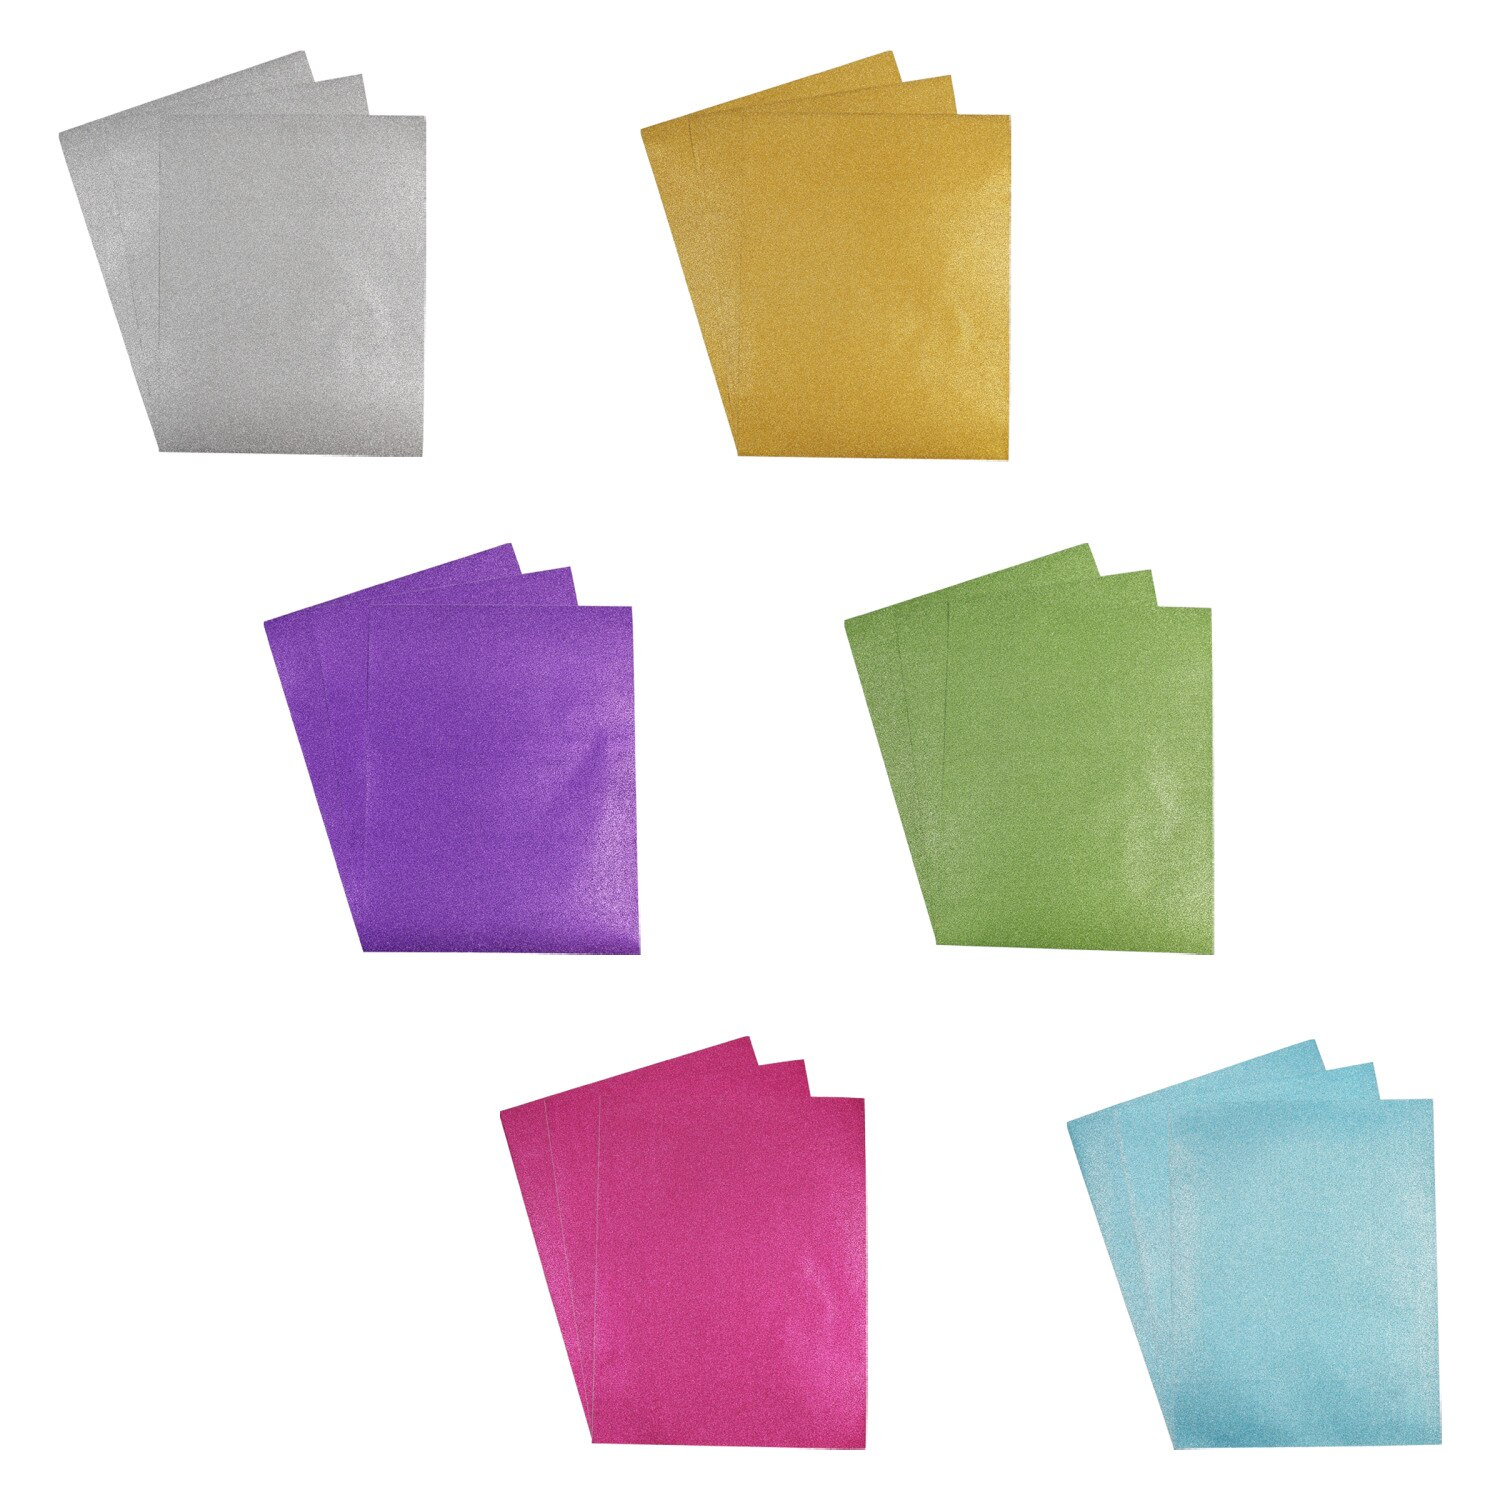 a72ca6eb366 Jot Glittery Poster Board with Adhesive Backing